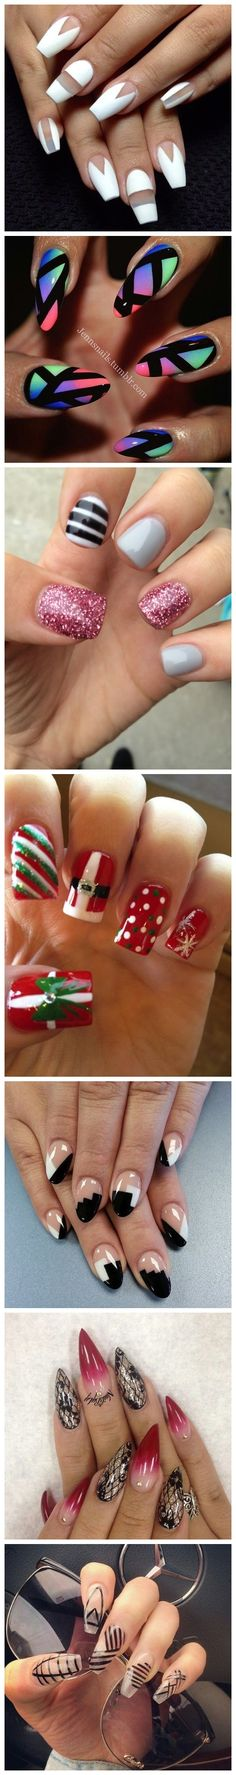 Lovely nail art ideas you must try – Nail 300 7 Cute & Easy Fall Nail Art Designs, Ideas, Trends & Stickers 2015 – Fashion Te Cute Nail Art, Nail Art Diy, Diy Nails, Manicure Ideas, Diy Art, Pedicure Kit, Fancy Nails, Love Nails, How To Do Nails